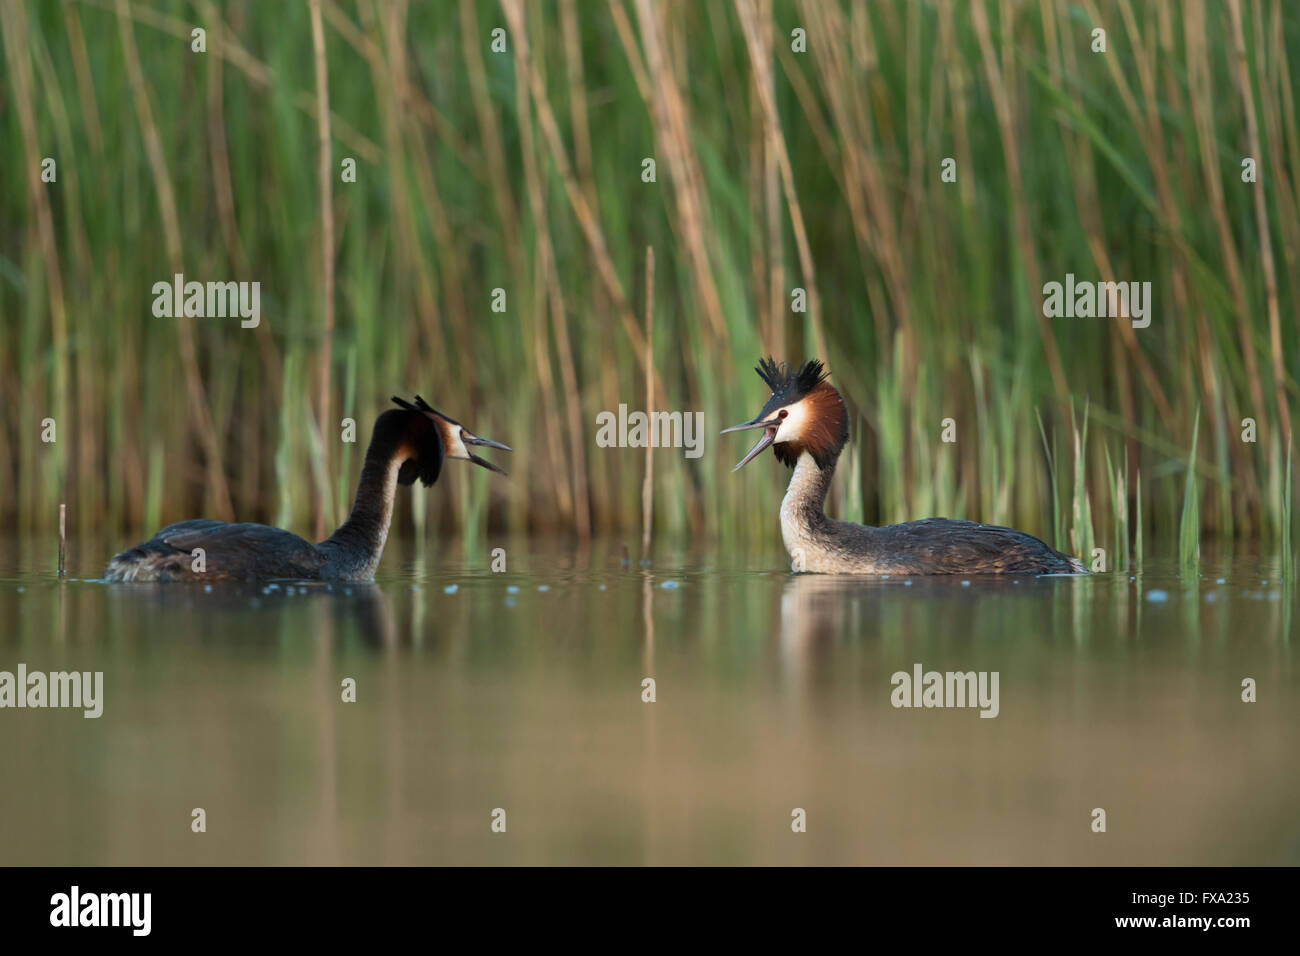 Great Crested Grebes ( Podiceps cristatus ), two adult, blustering each other as part of their territorial behavior. - Stock Image